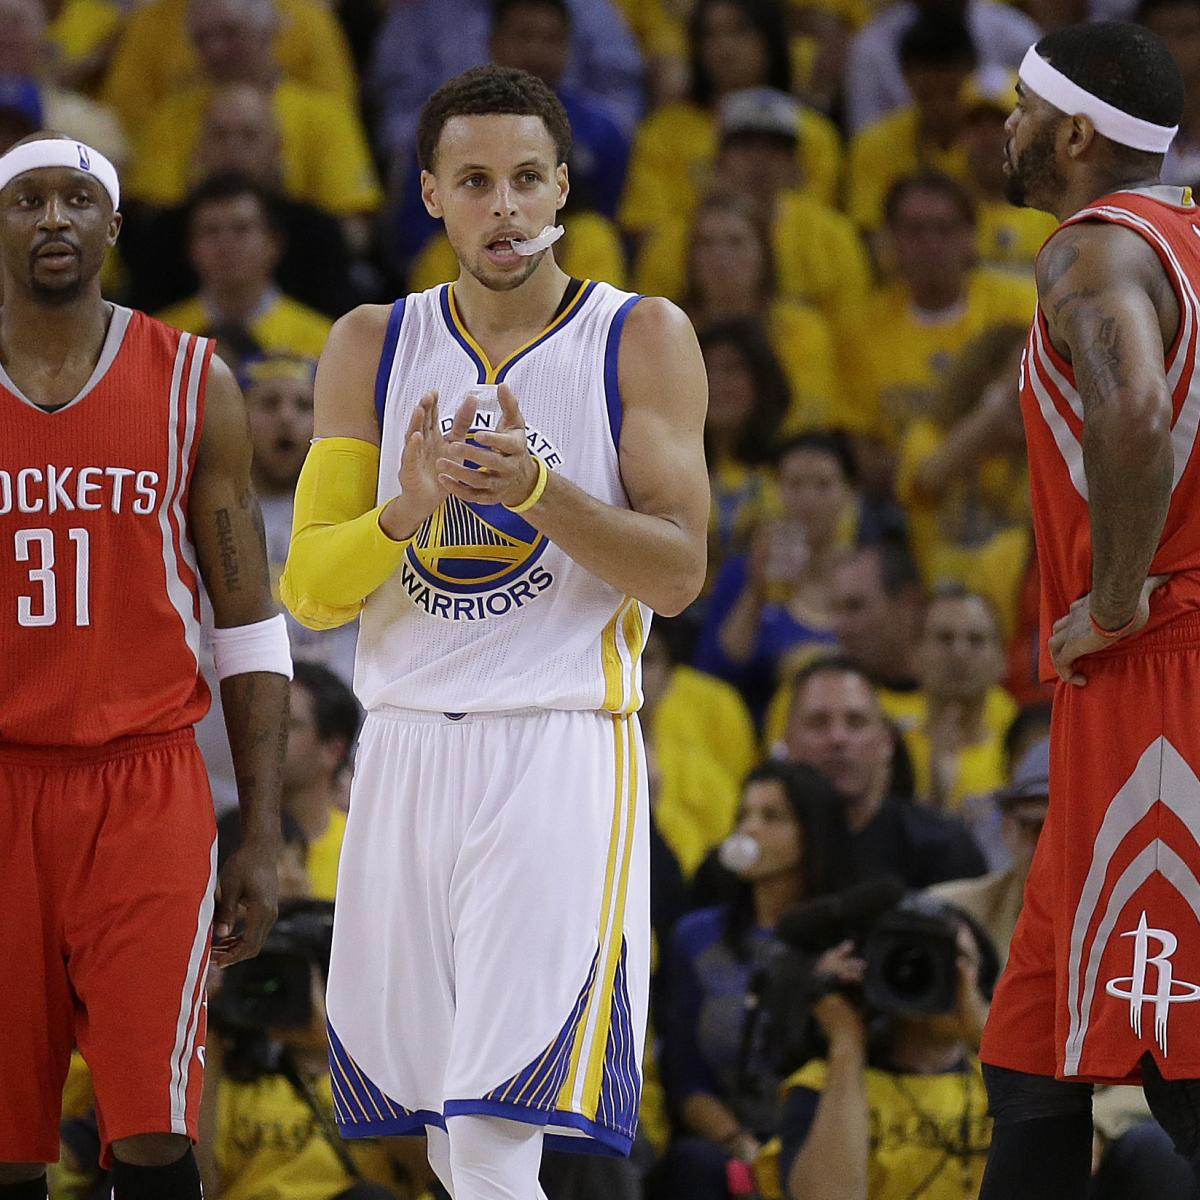 Houston Rockets Vs Golden State Warriors Lineup: NBA Playoffs 2015: TV Schedule And Predictions For